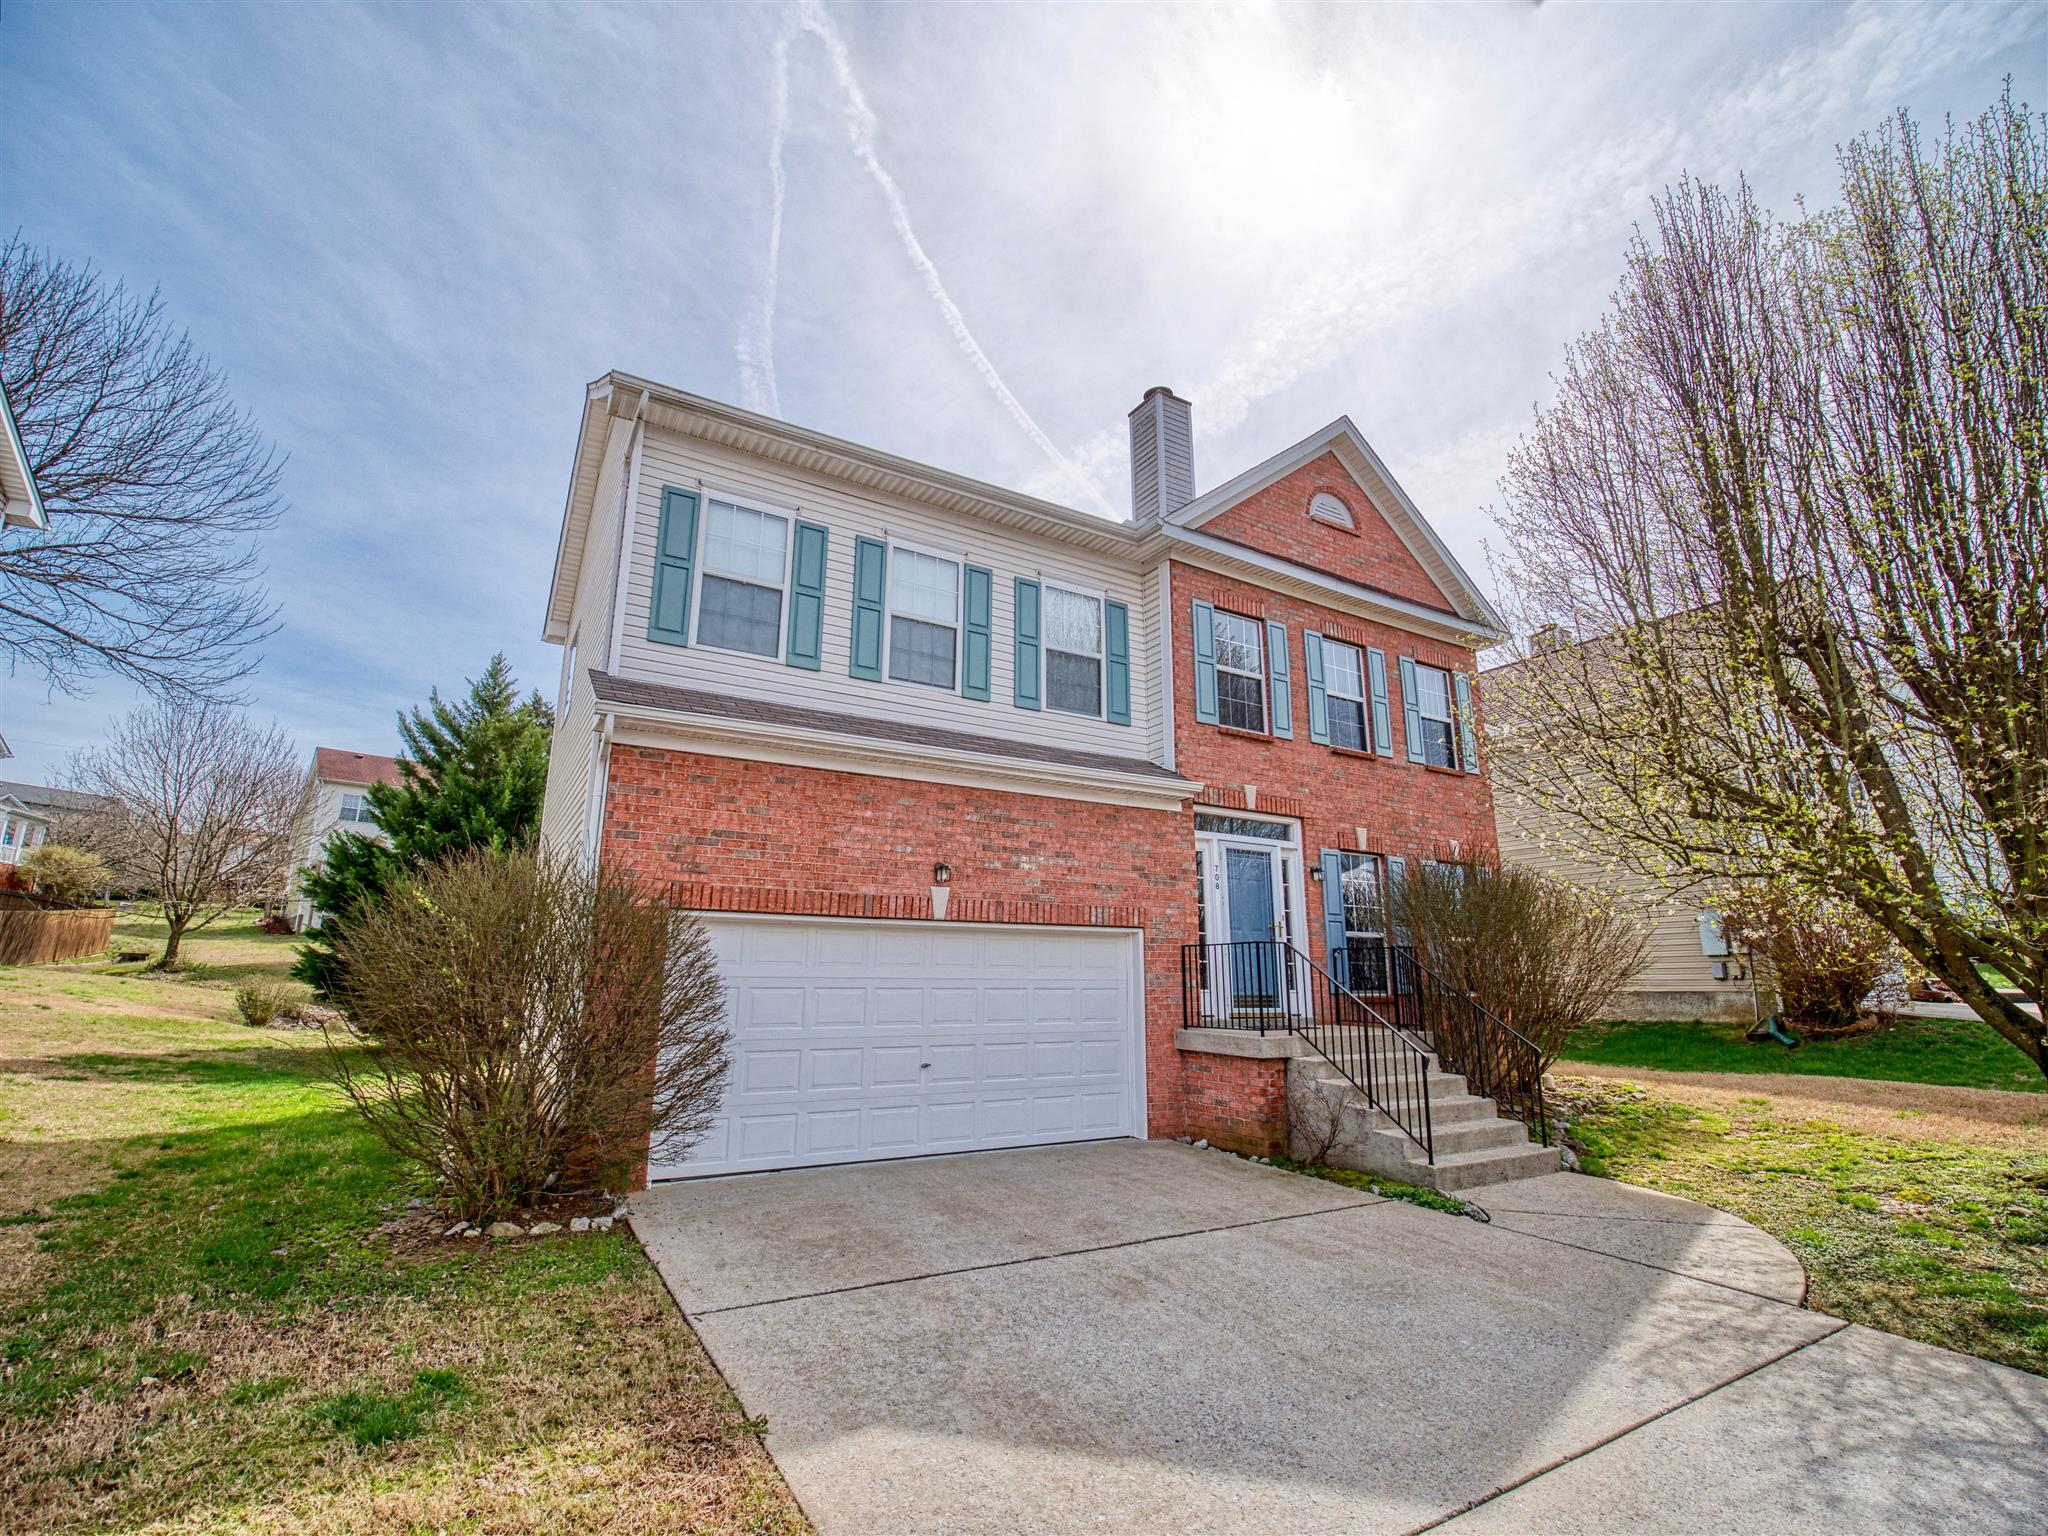 708 Hallcrest Ct, Hermitage in Davidson County County, TN 37076 Home for Sale